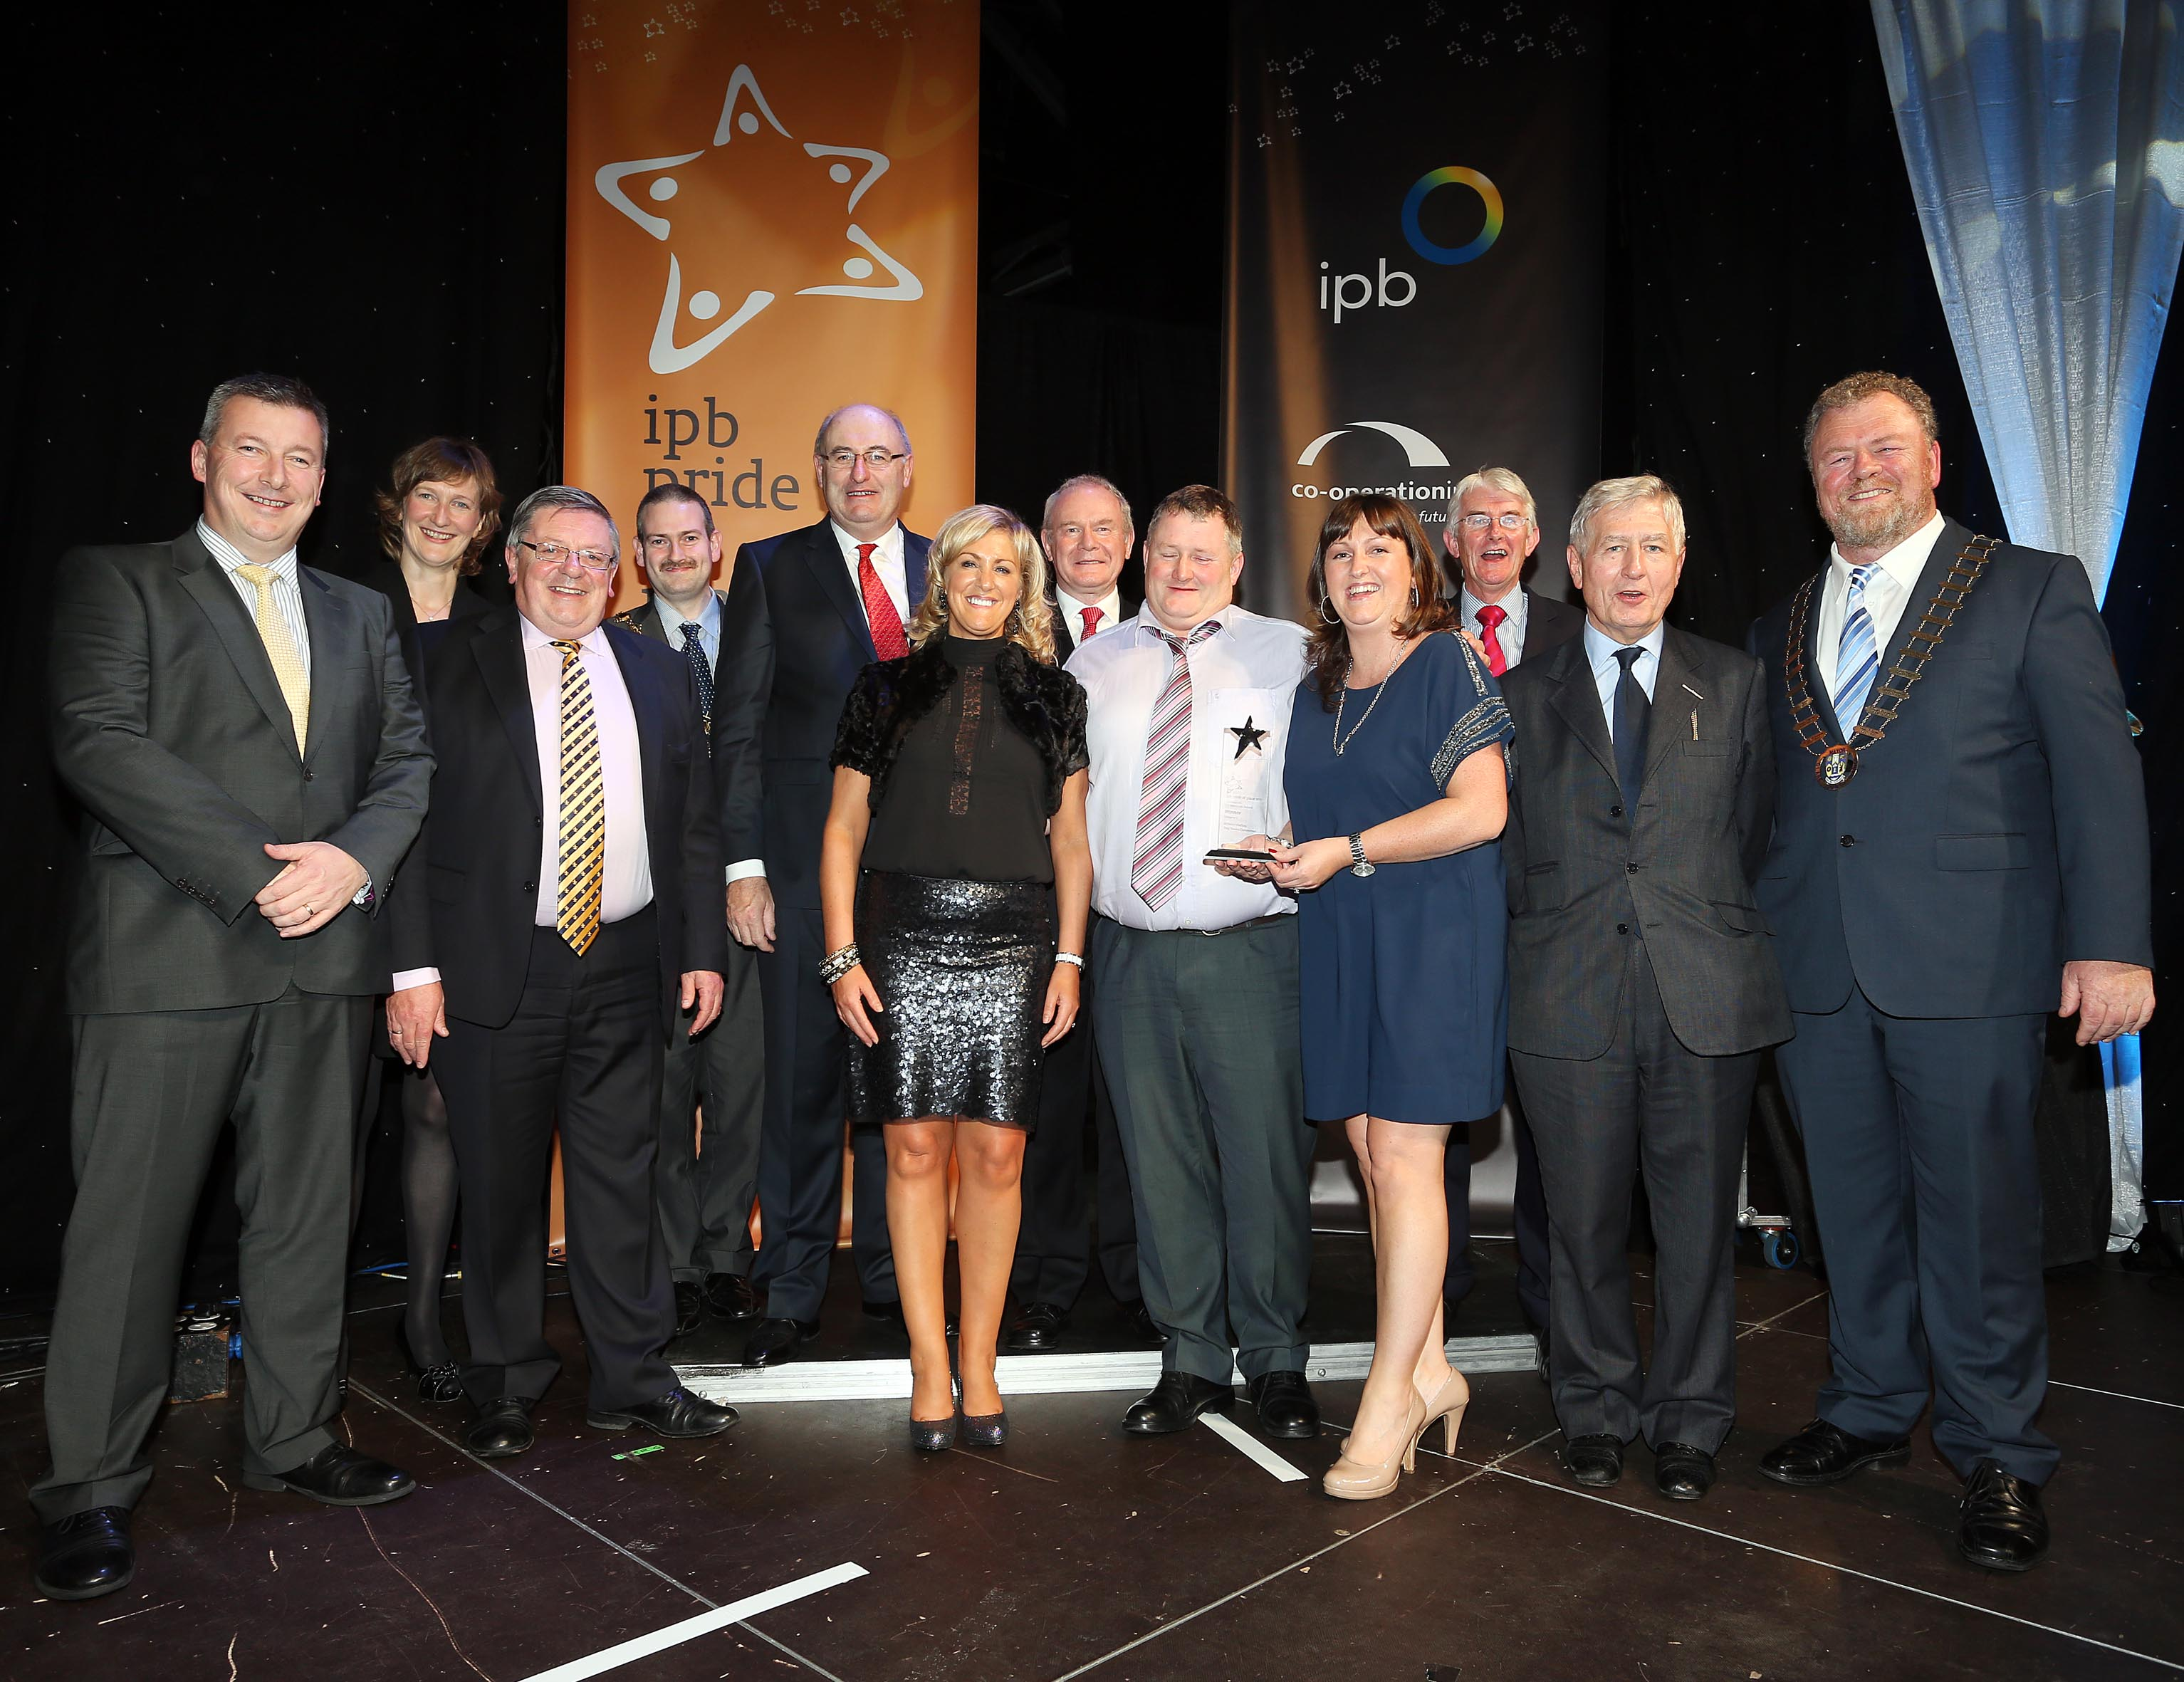 The Mayor Derry, Councillor Martin Reilly, Phil Hogan, TD, Minister for the Environment, Community & Local Government, Deputy First Minister Martin McGuinness, George Jones, chairman, IPB, Christopher Moran, chairman,Co-operation Ireland and Tom Dowling, chairman, Pride of Place, with awards winners from Miltown Malbay, County Clare. Photo Lorcan Doherty Photography